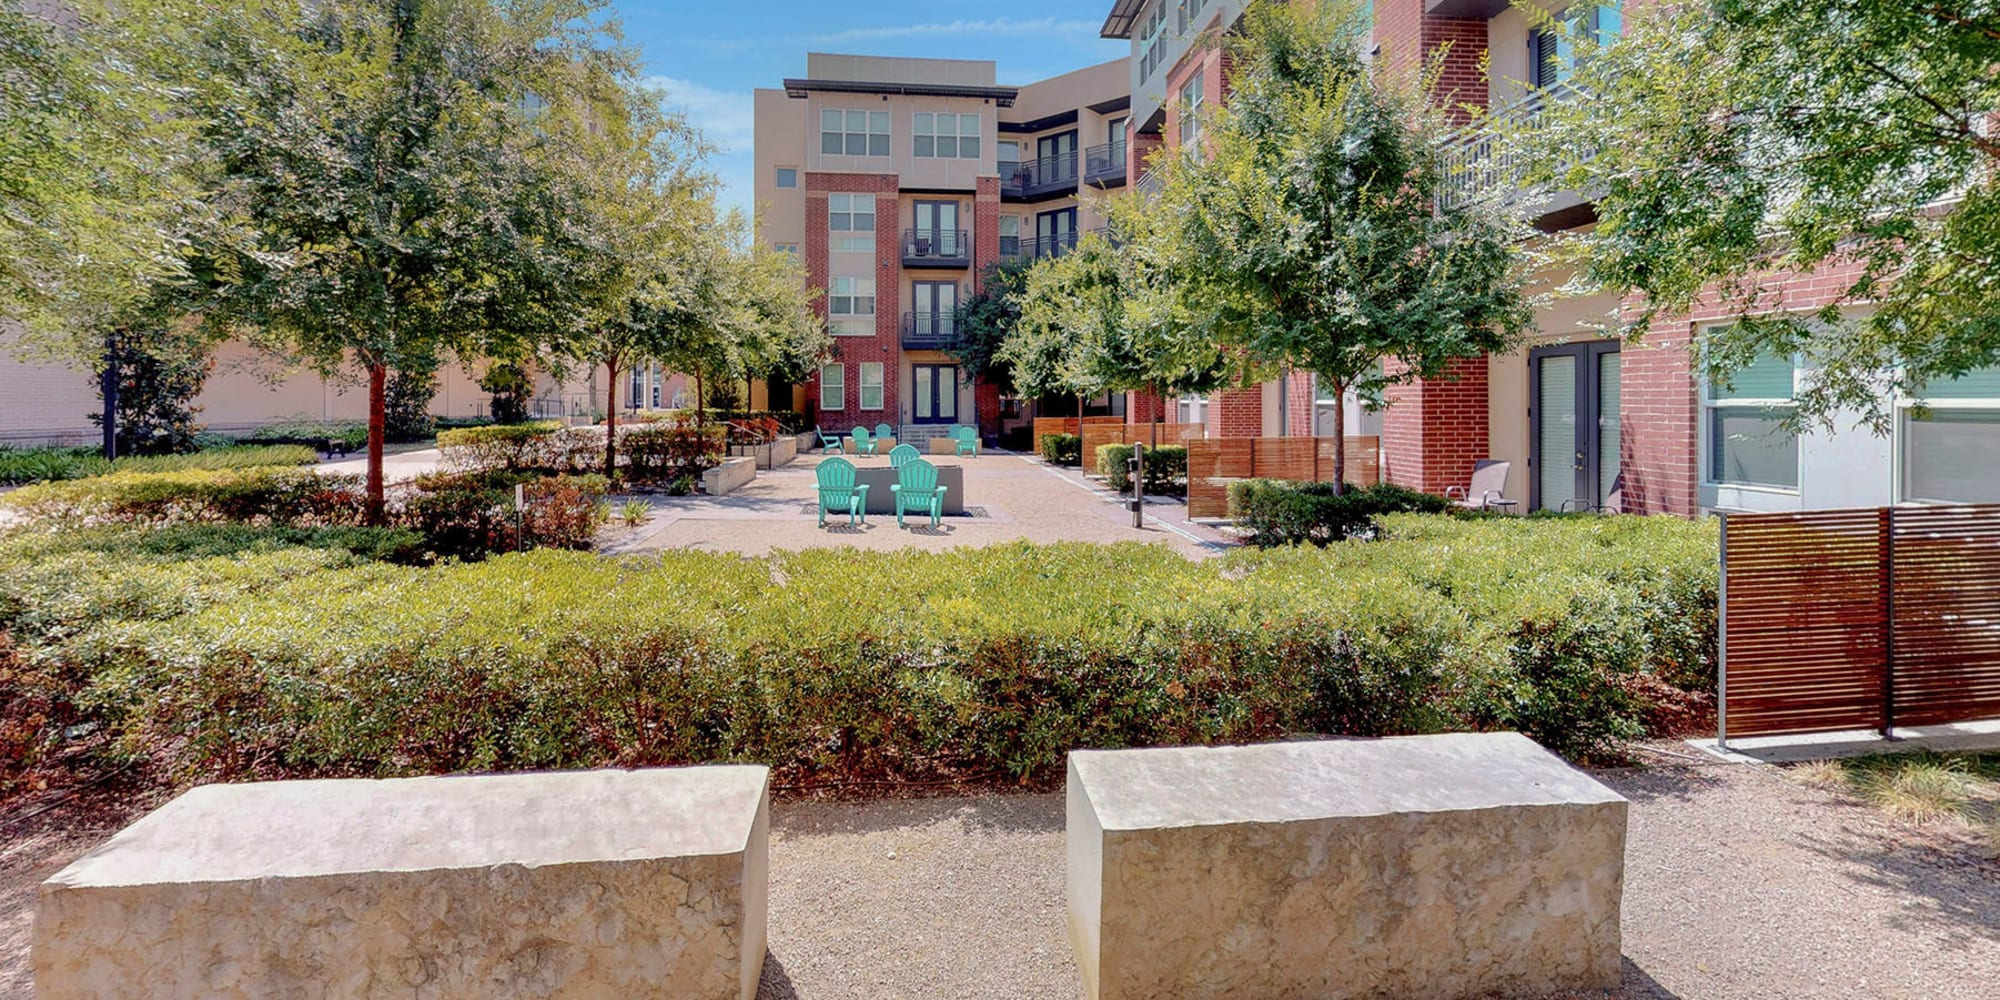 Luxury apartments at Oaks 5th Street Crossing City Center in Garland, Texas